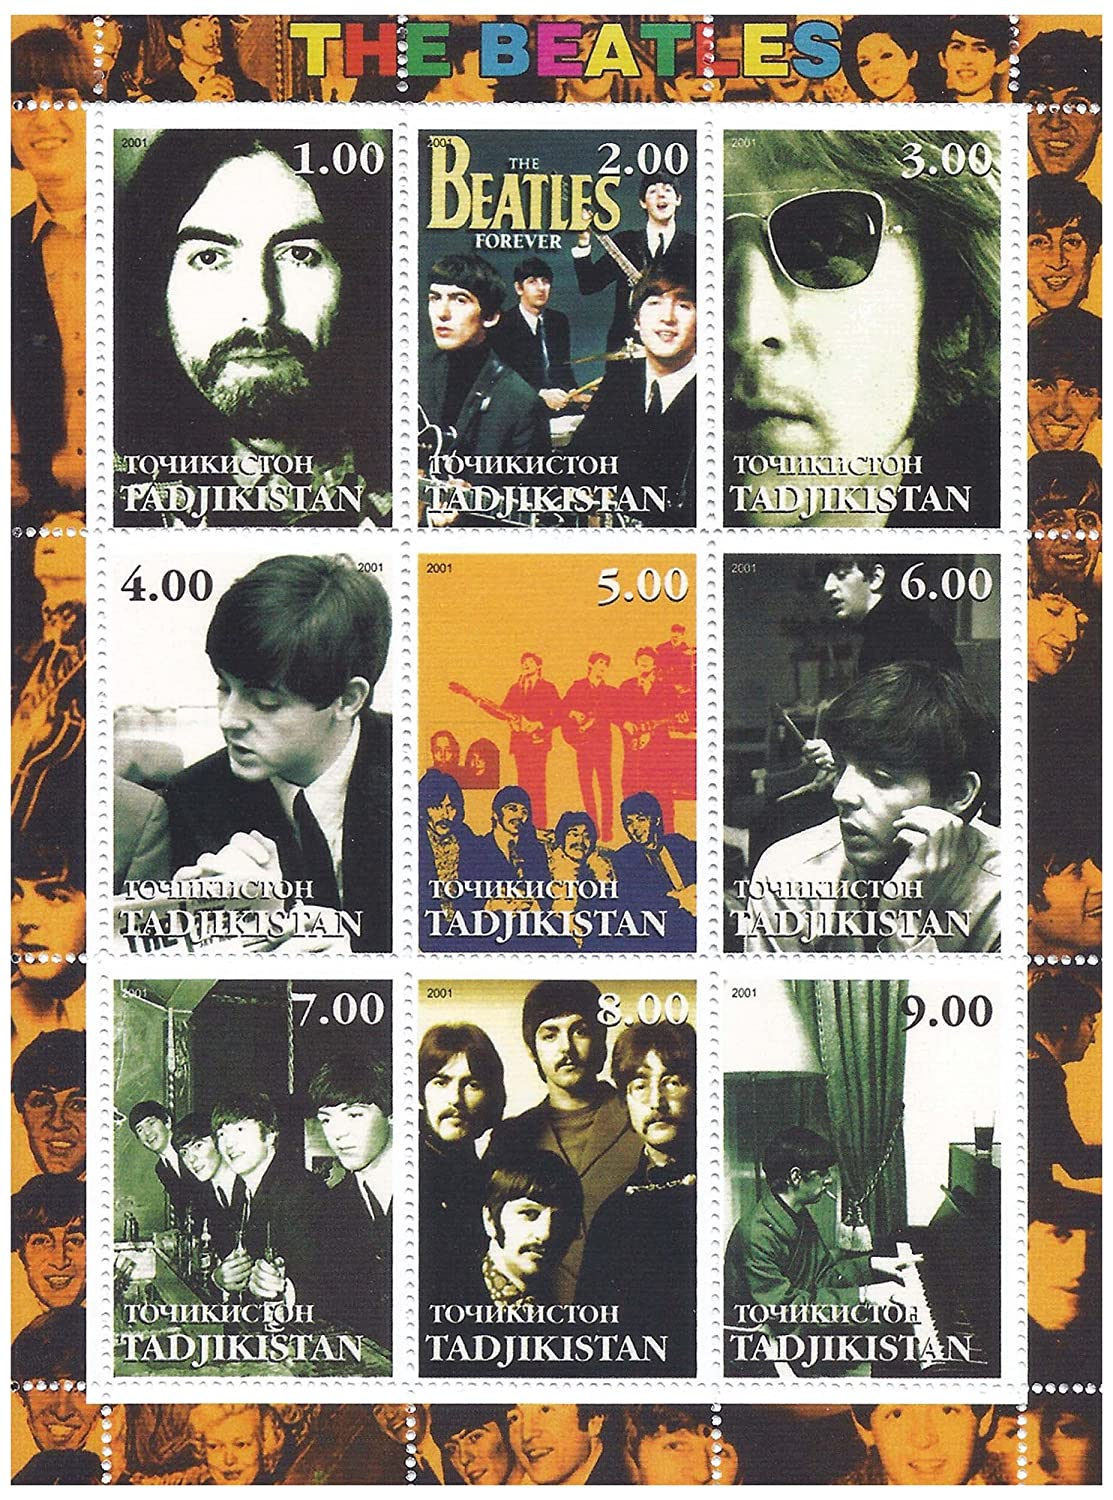 Classic Beatles photos - 9 stamps for collectors on a mint condition stamp sheet - never mounted and never hinged Stamps by Stampbank